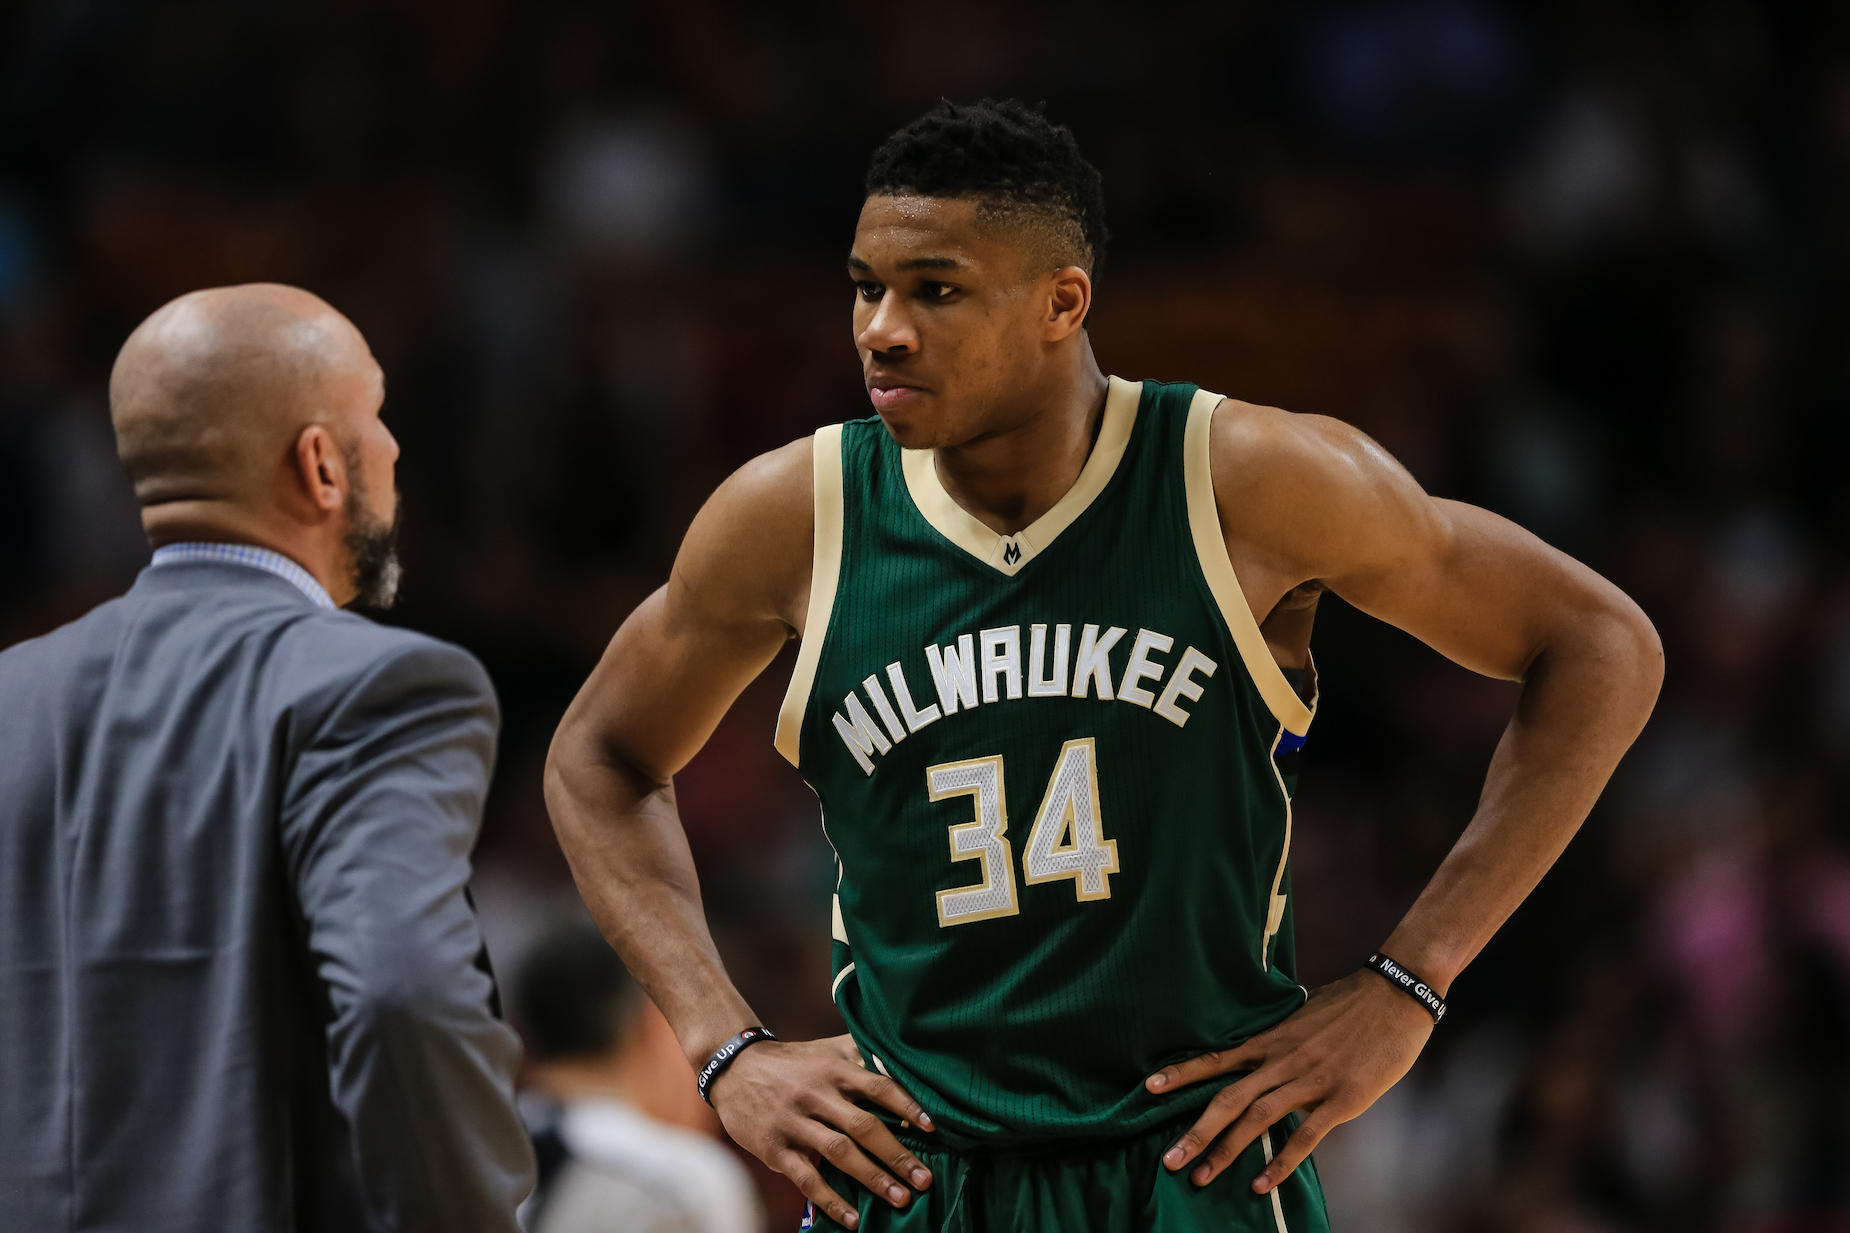 Bucks star Giannis Antetokounmpo learned a lesson about NBA history after being benched by Jason Kidd.